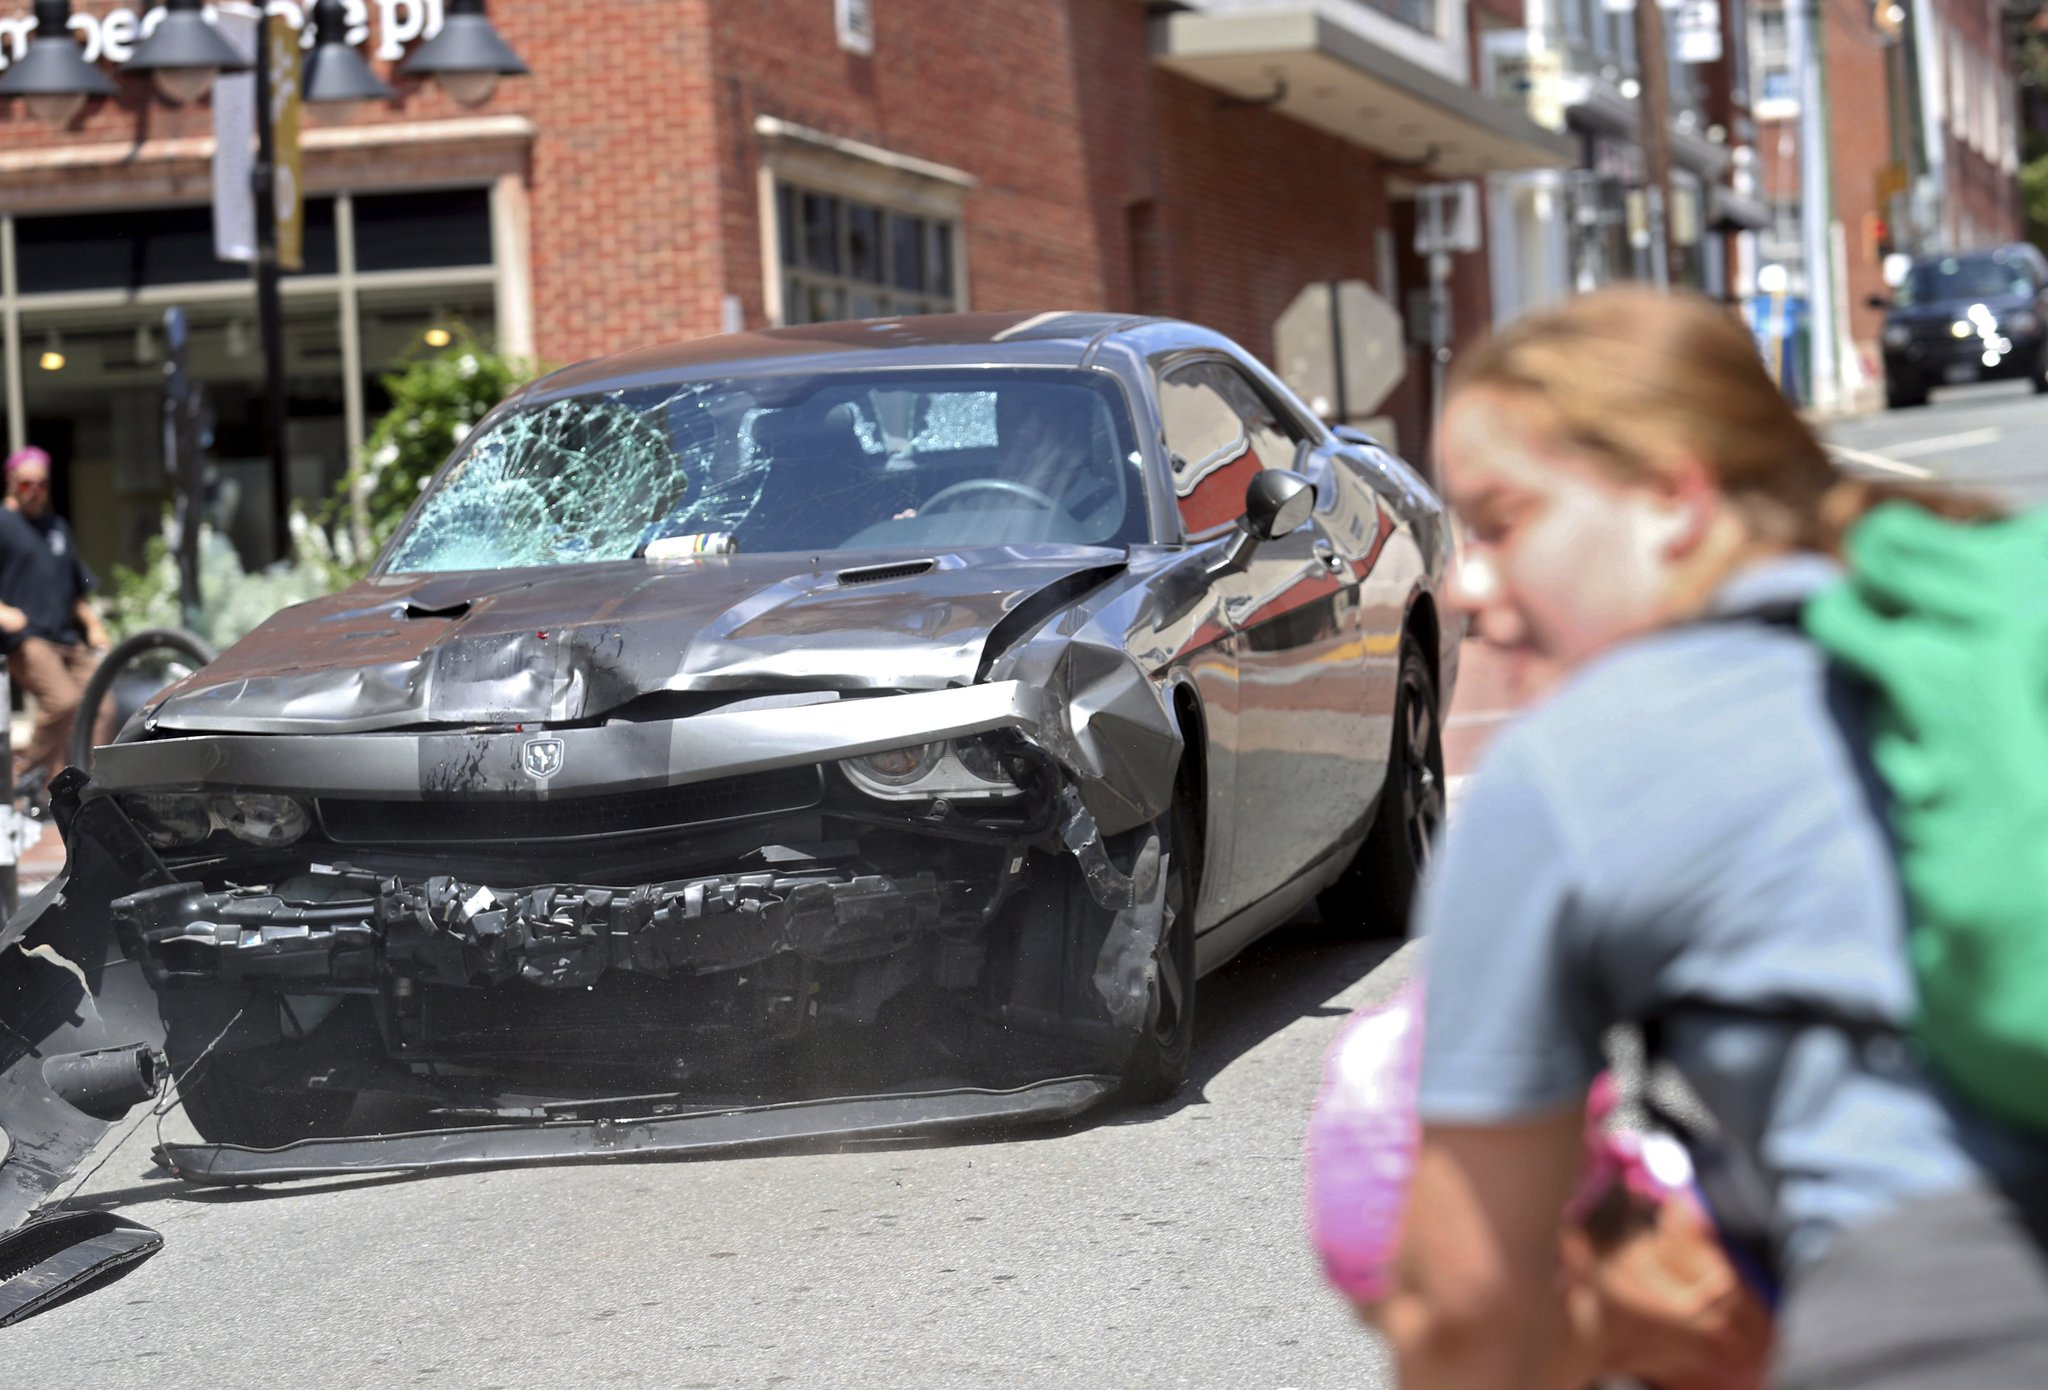 FBI special agent: Charlottesville suspect won't face terror charge